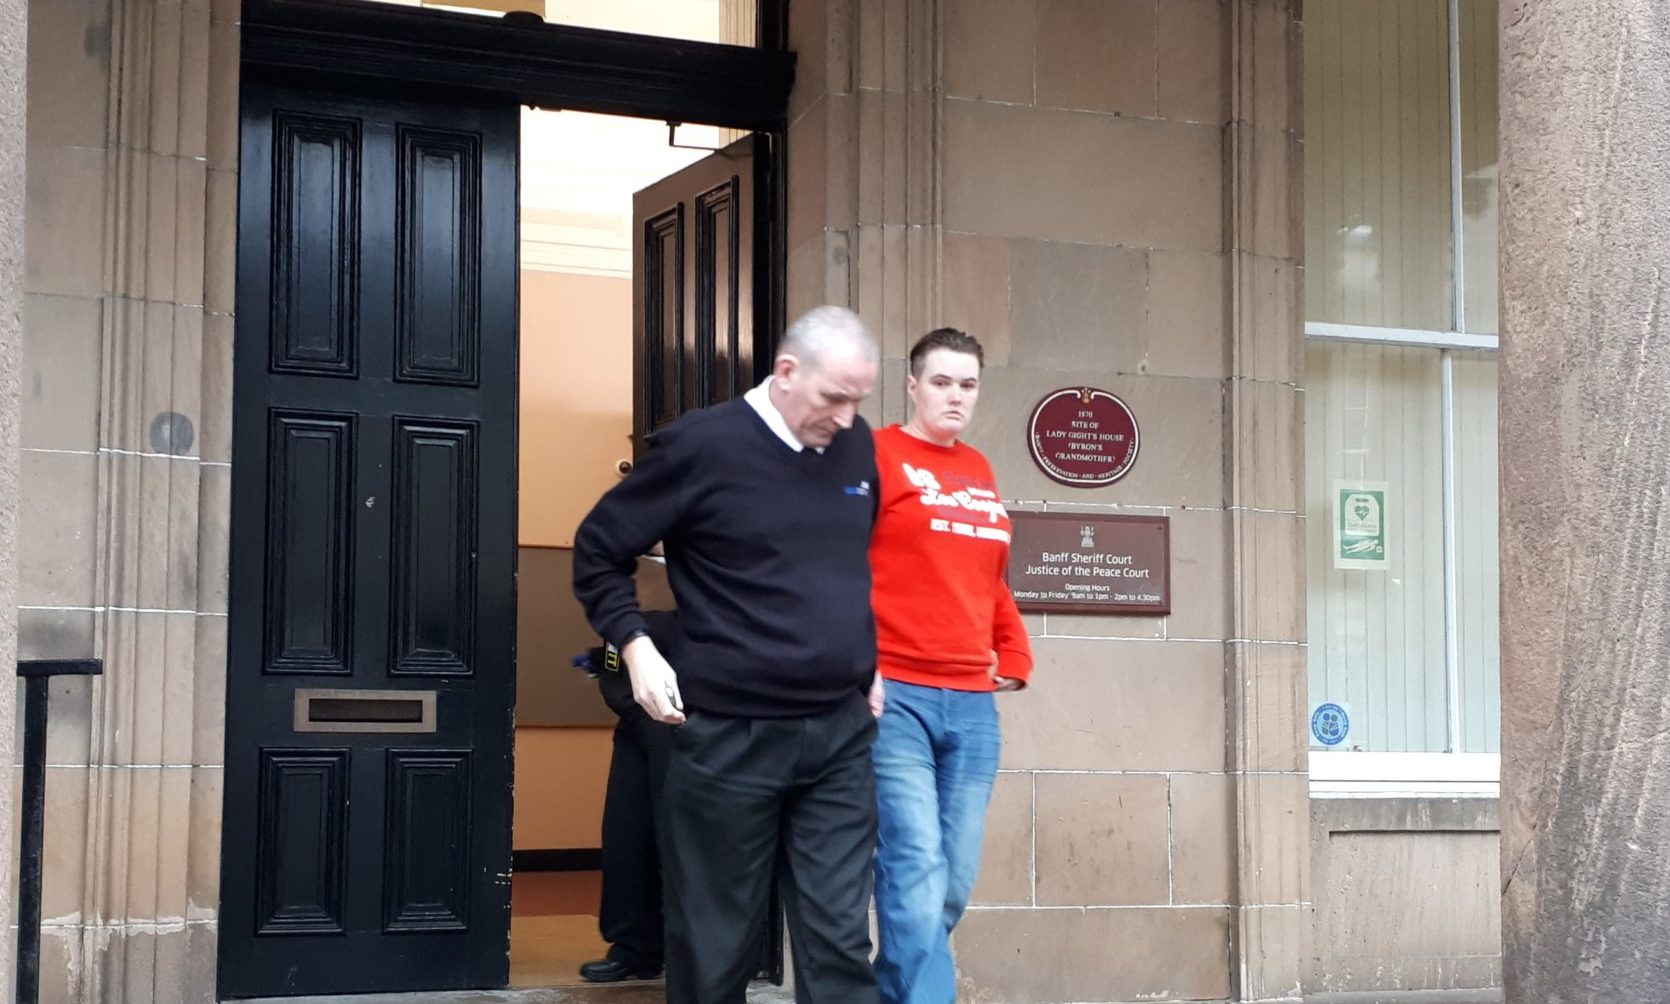 Hannah Souter being escorted from Banff Sheriff Court